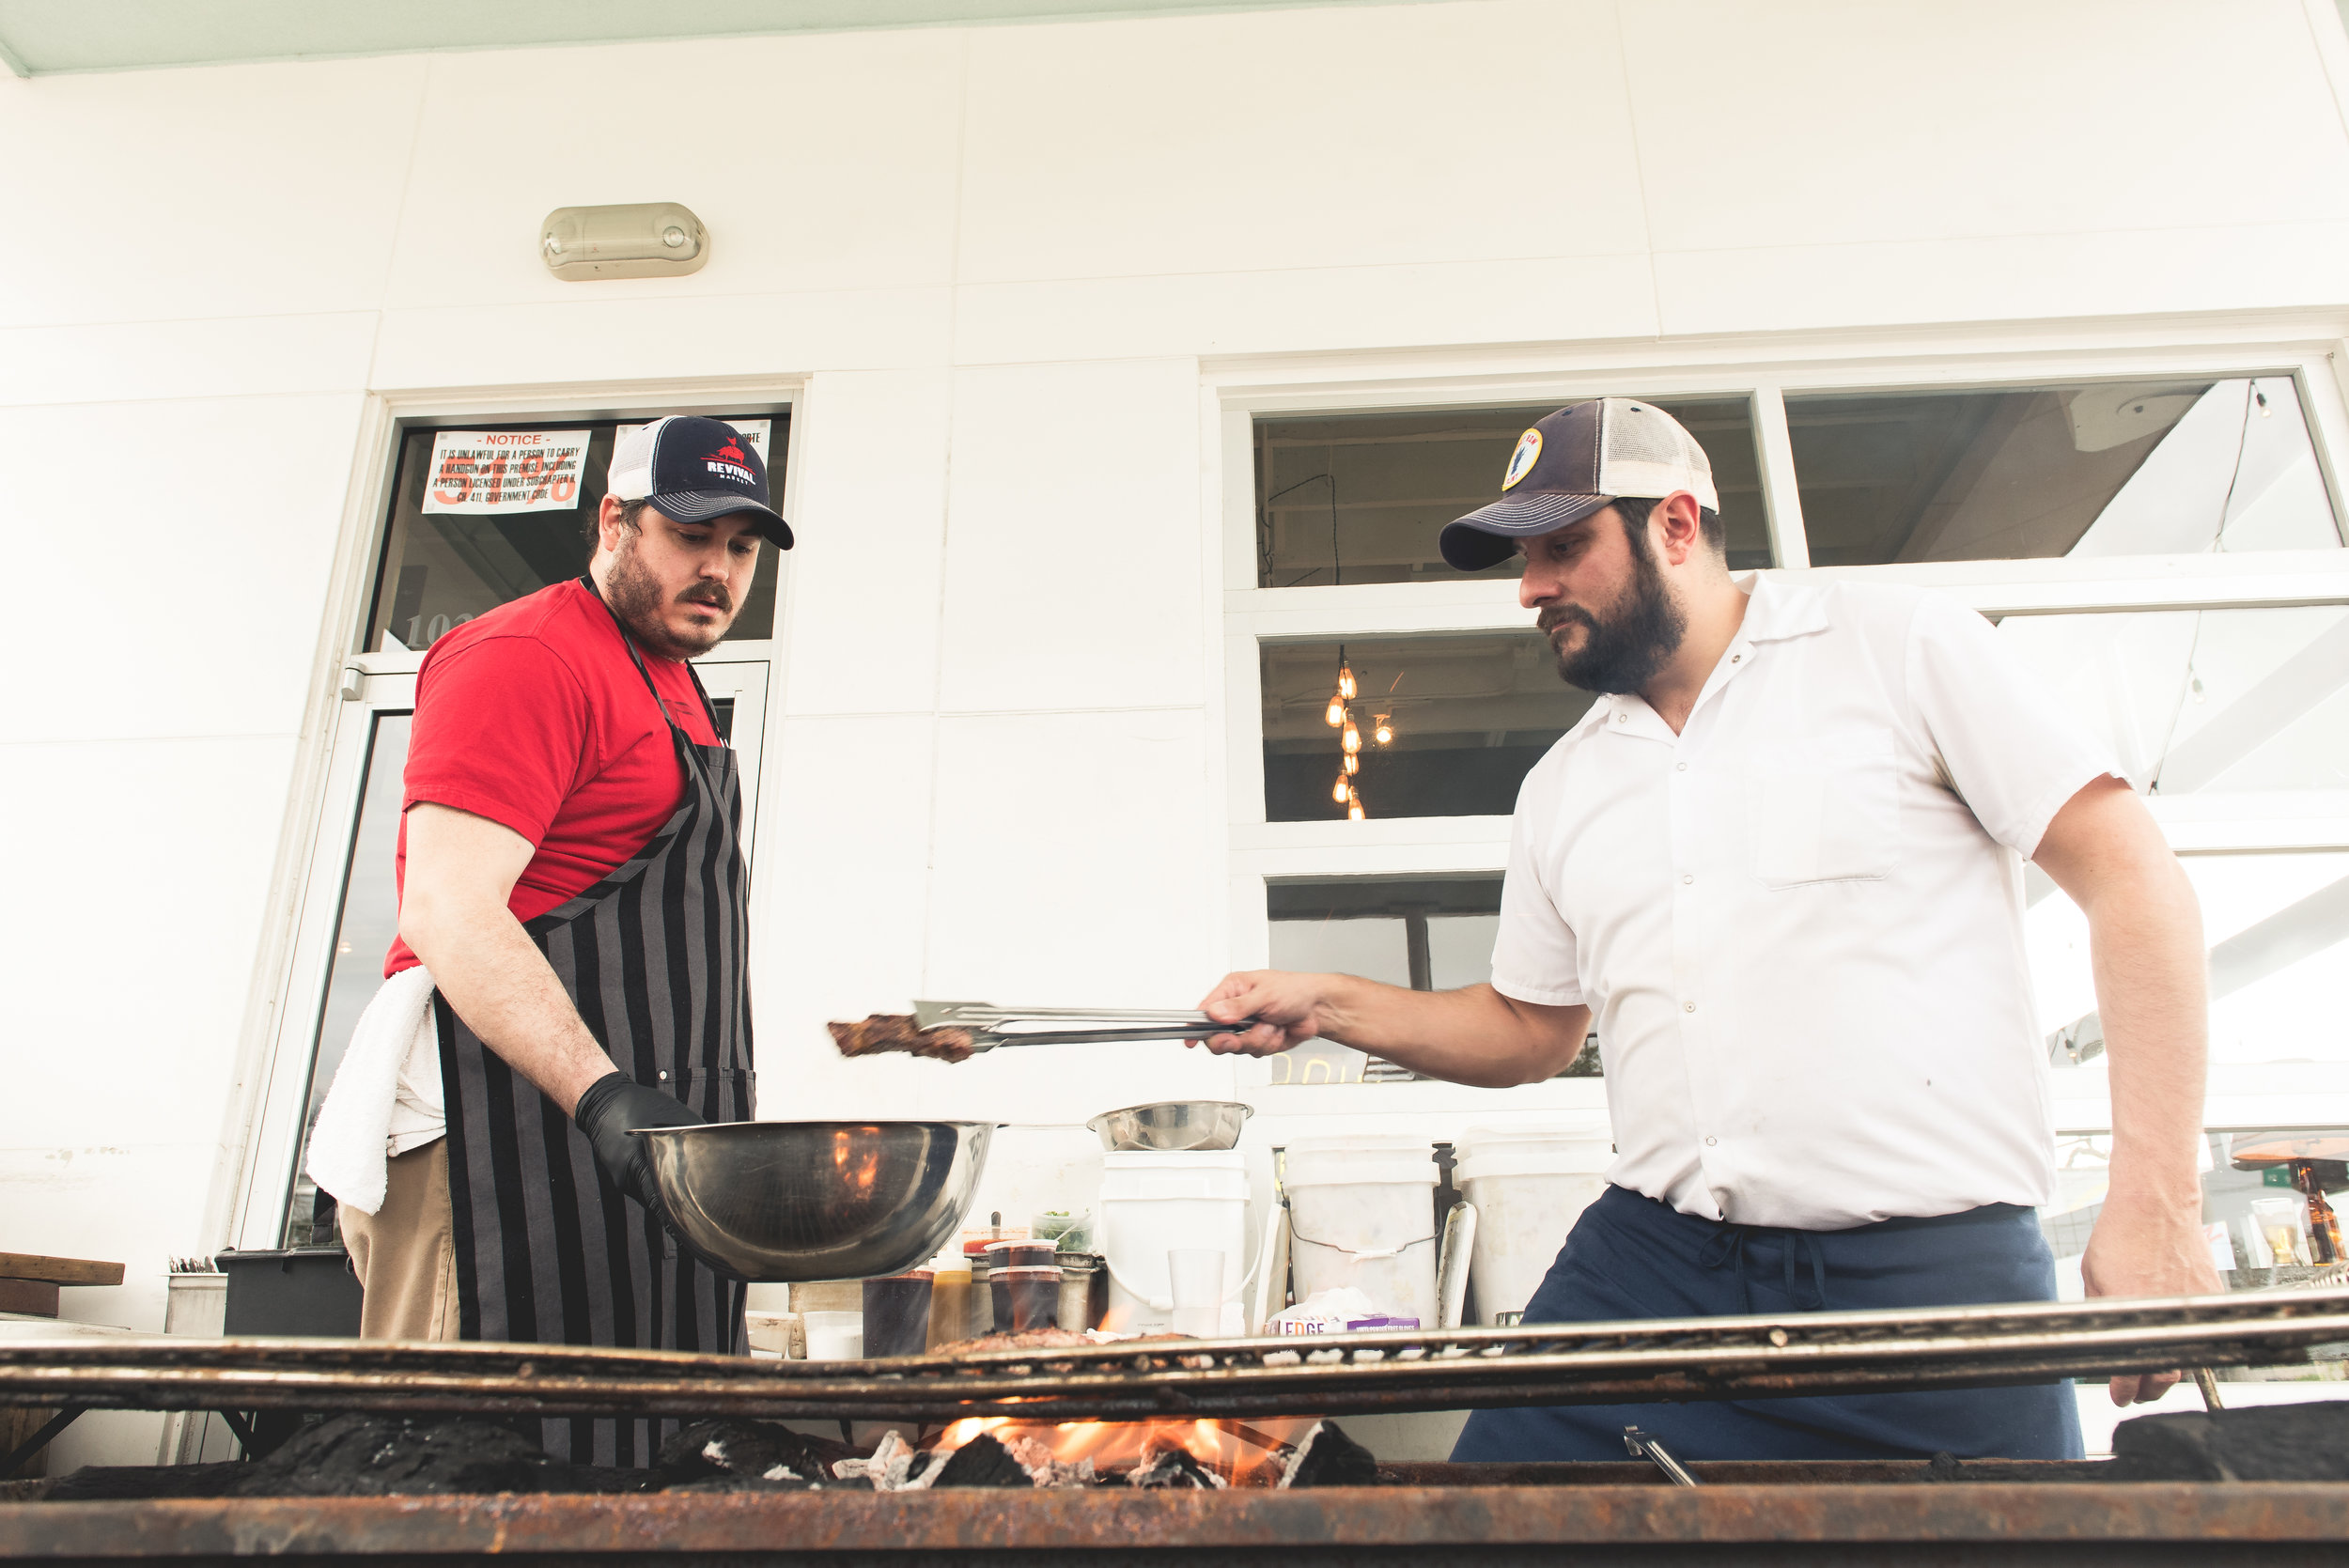 Revival Market's Todd Patterson and Marcelo grilling ribs